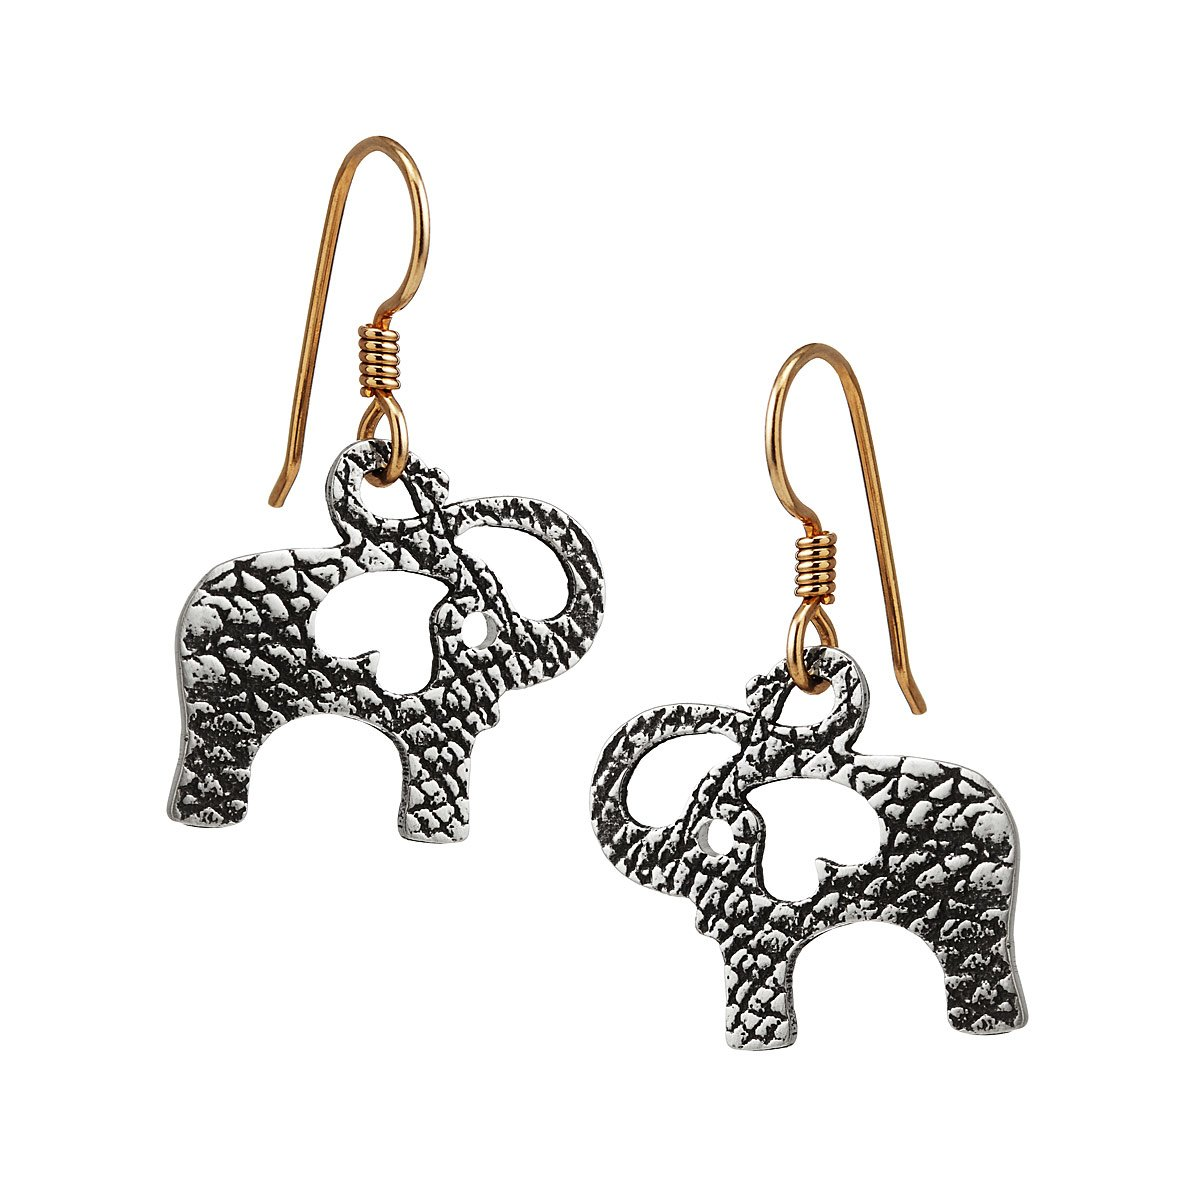 shopify jewelry alex mini gold earrings addition in elephant woo ear g yellow products